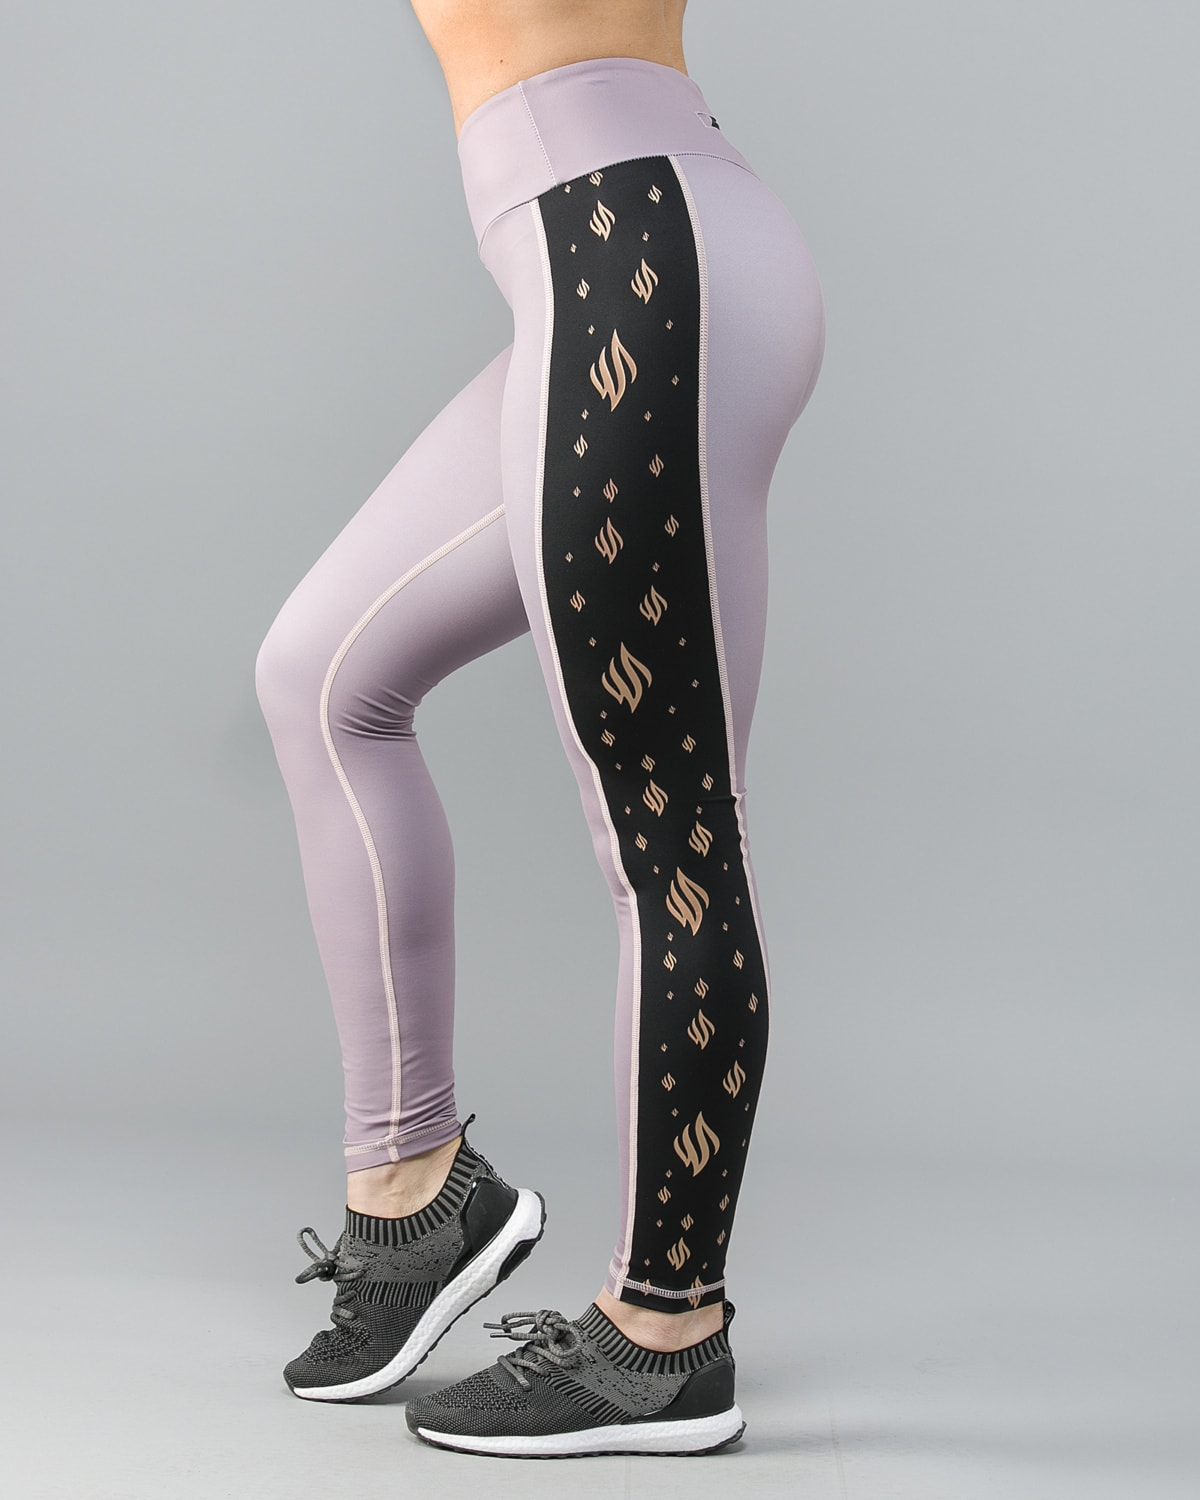 We-Are-Fit-Empower-Rose-Tights